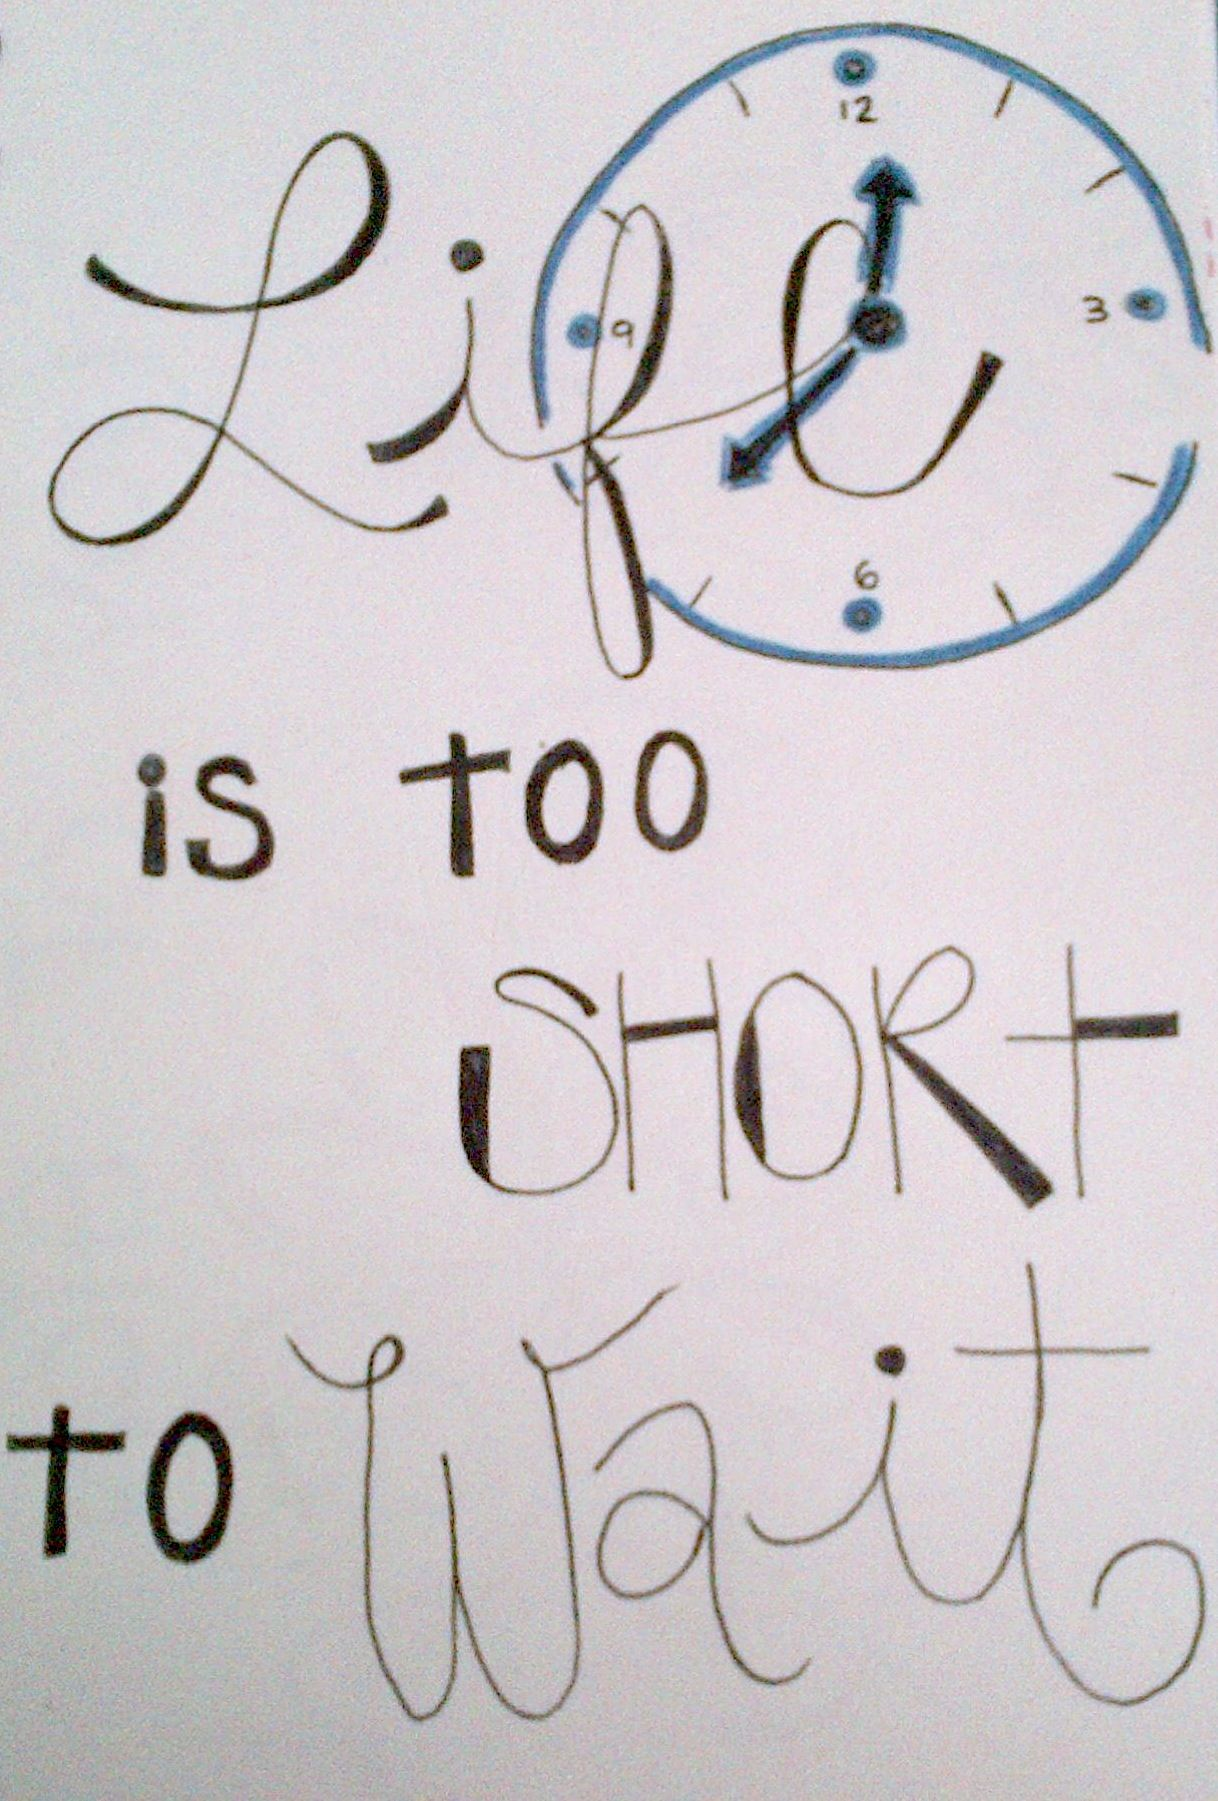 life is too short to wait #clock #wait #quote #life